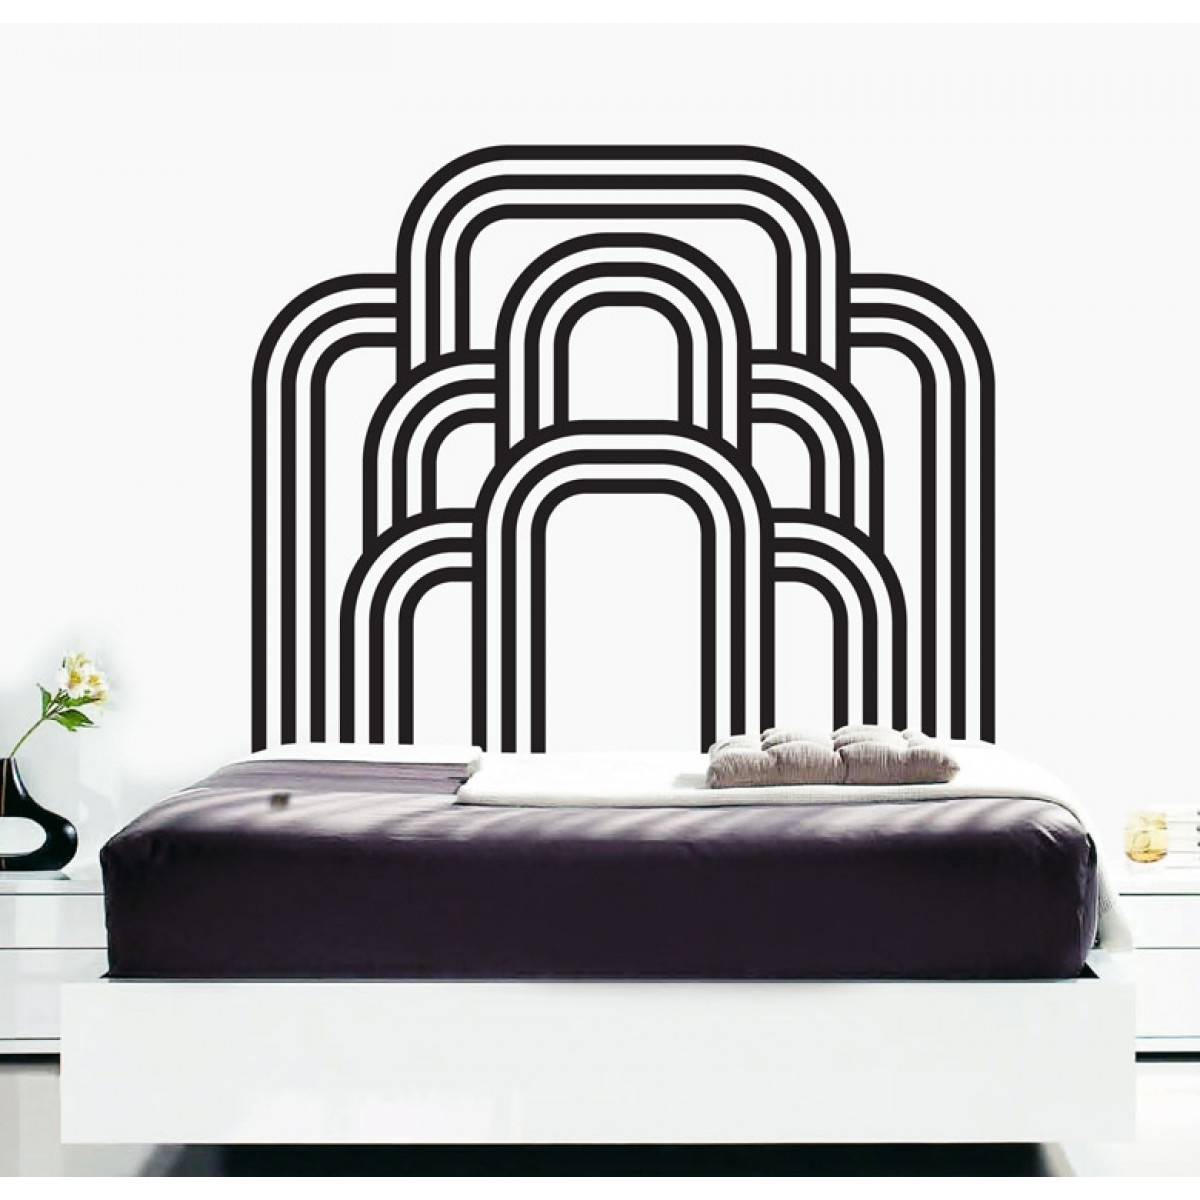 Wall Decals – Thewonderwalls® | Bedroom Art Deco Wall Stickers Within Most Current Art Deco Wall Art (Gallery 6 of 20)